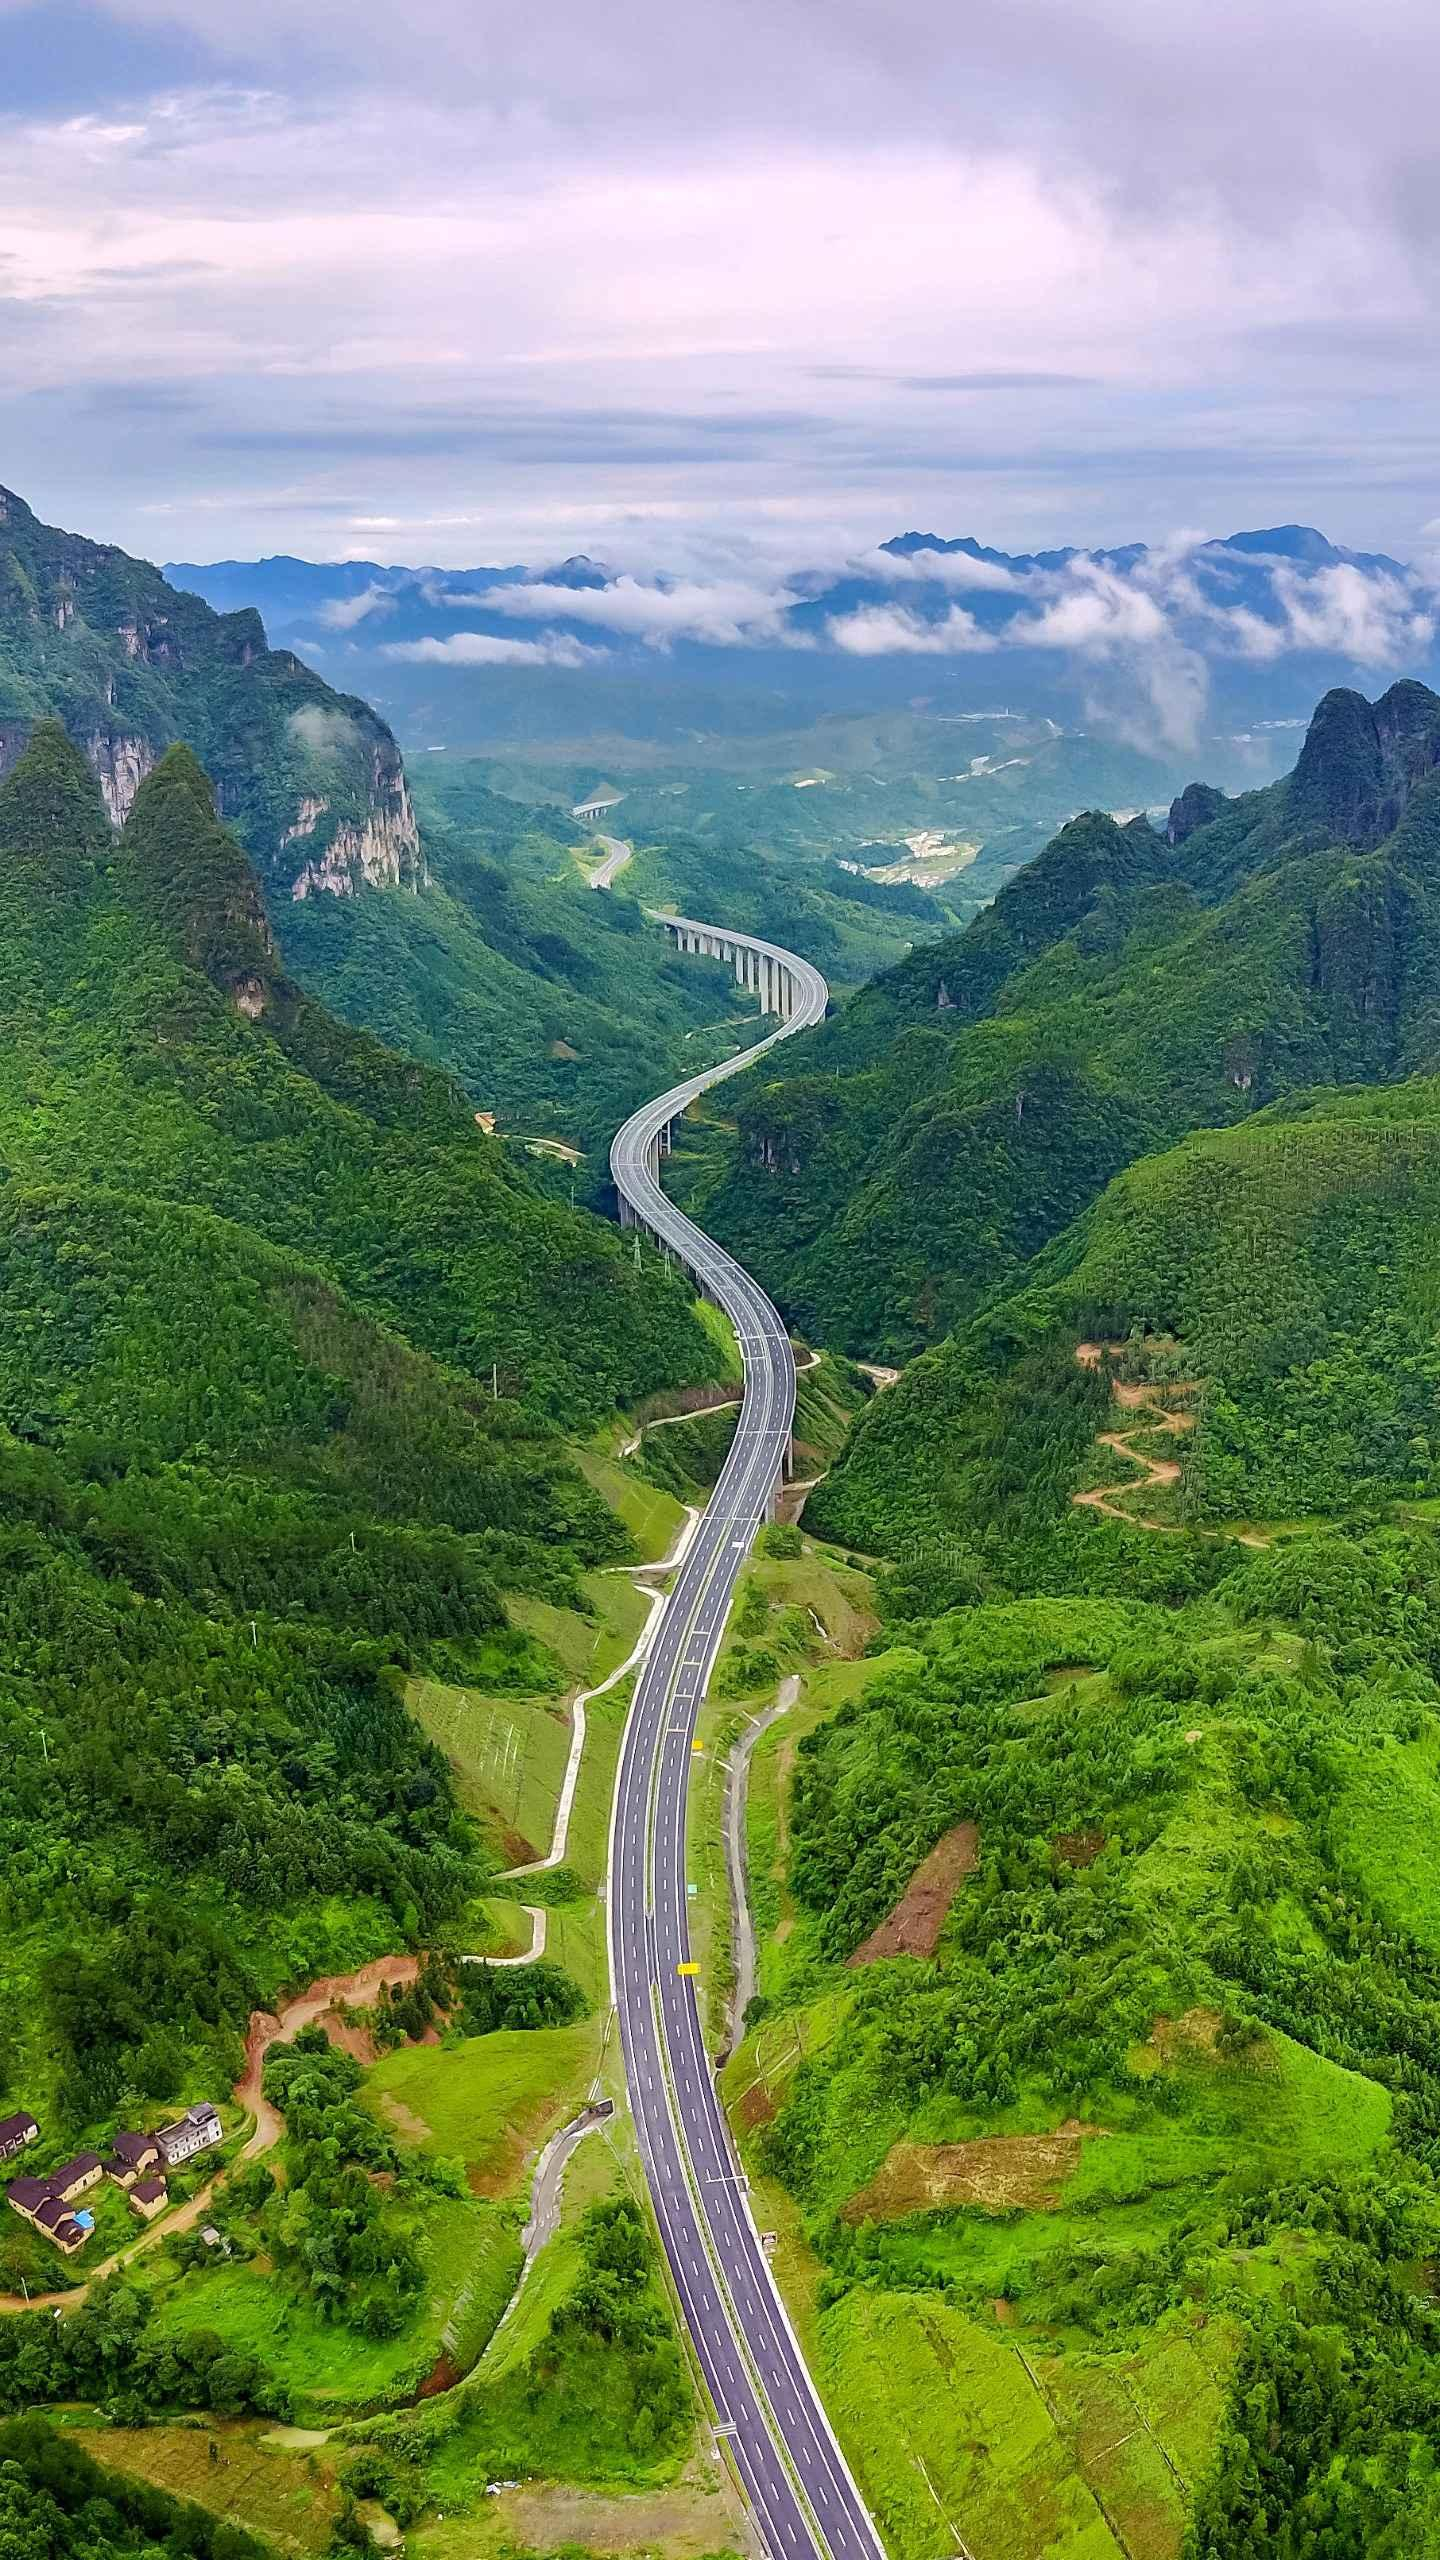 The winding highway. In order to avoid the occurrence of dangerous accidents, and at the same time let the drivers be vigilant, the general highways are built up and down.